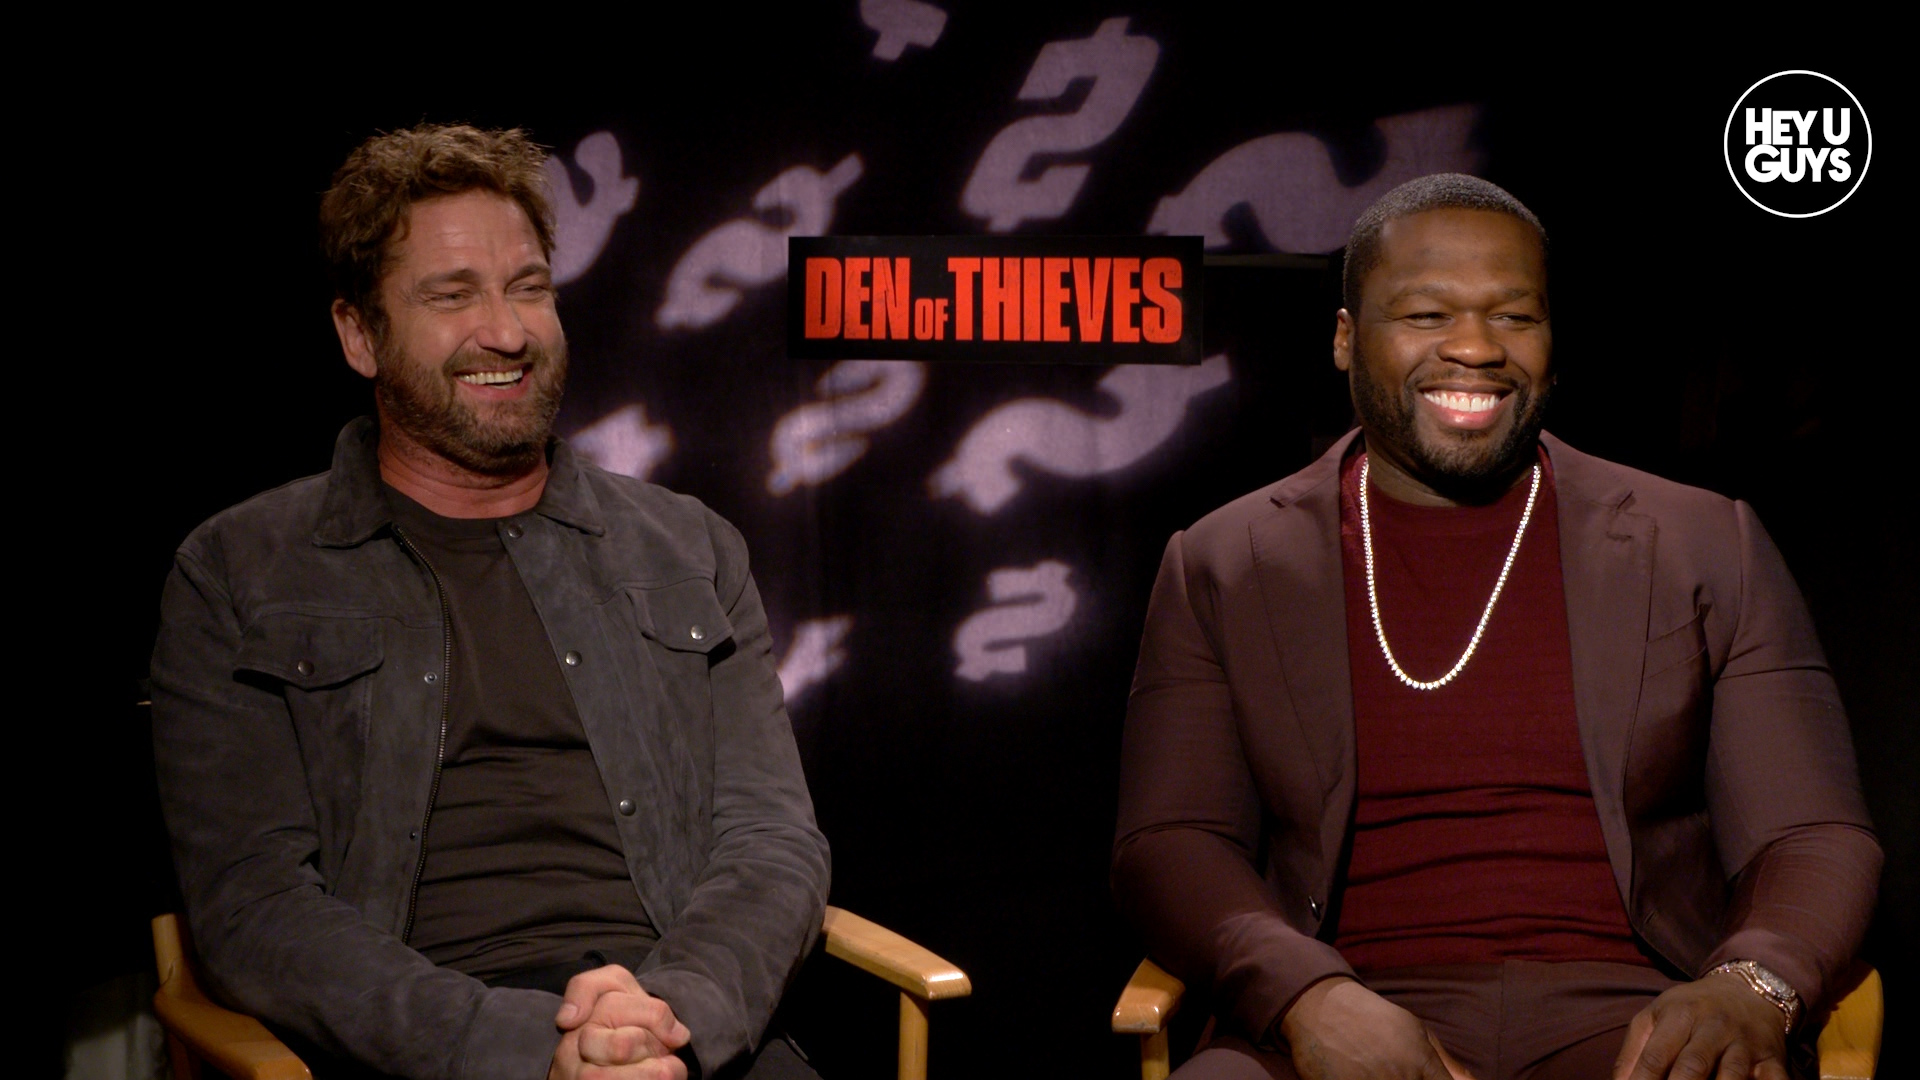 Download Film Den Of Thieves 2018